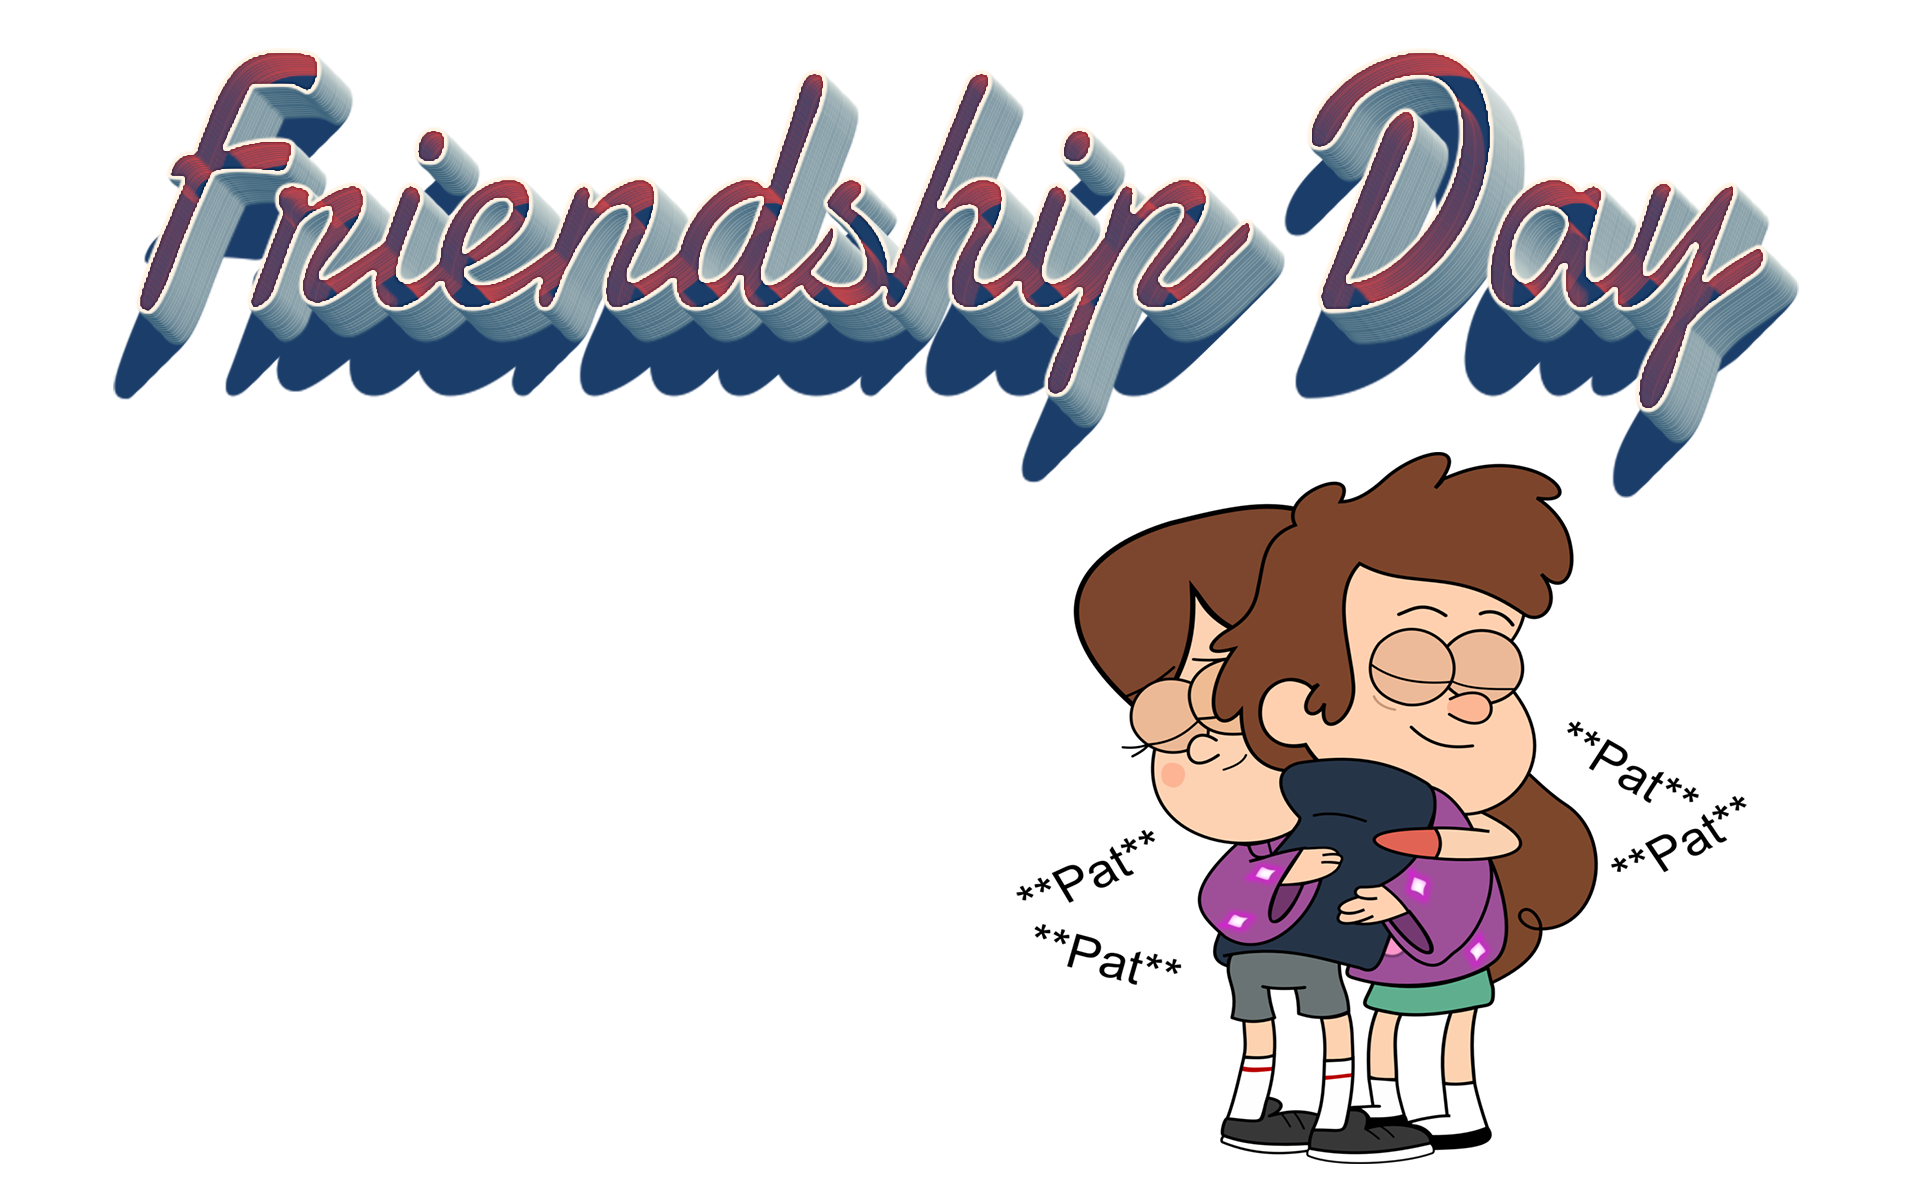 Clip art Friendship Day Portable Network Graphics Image.